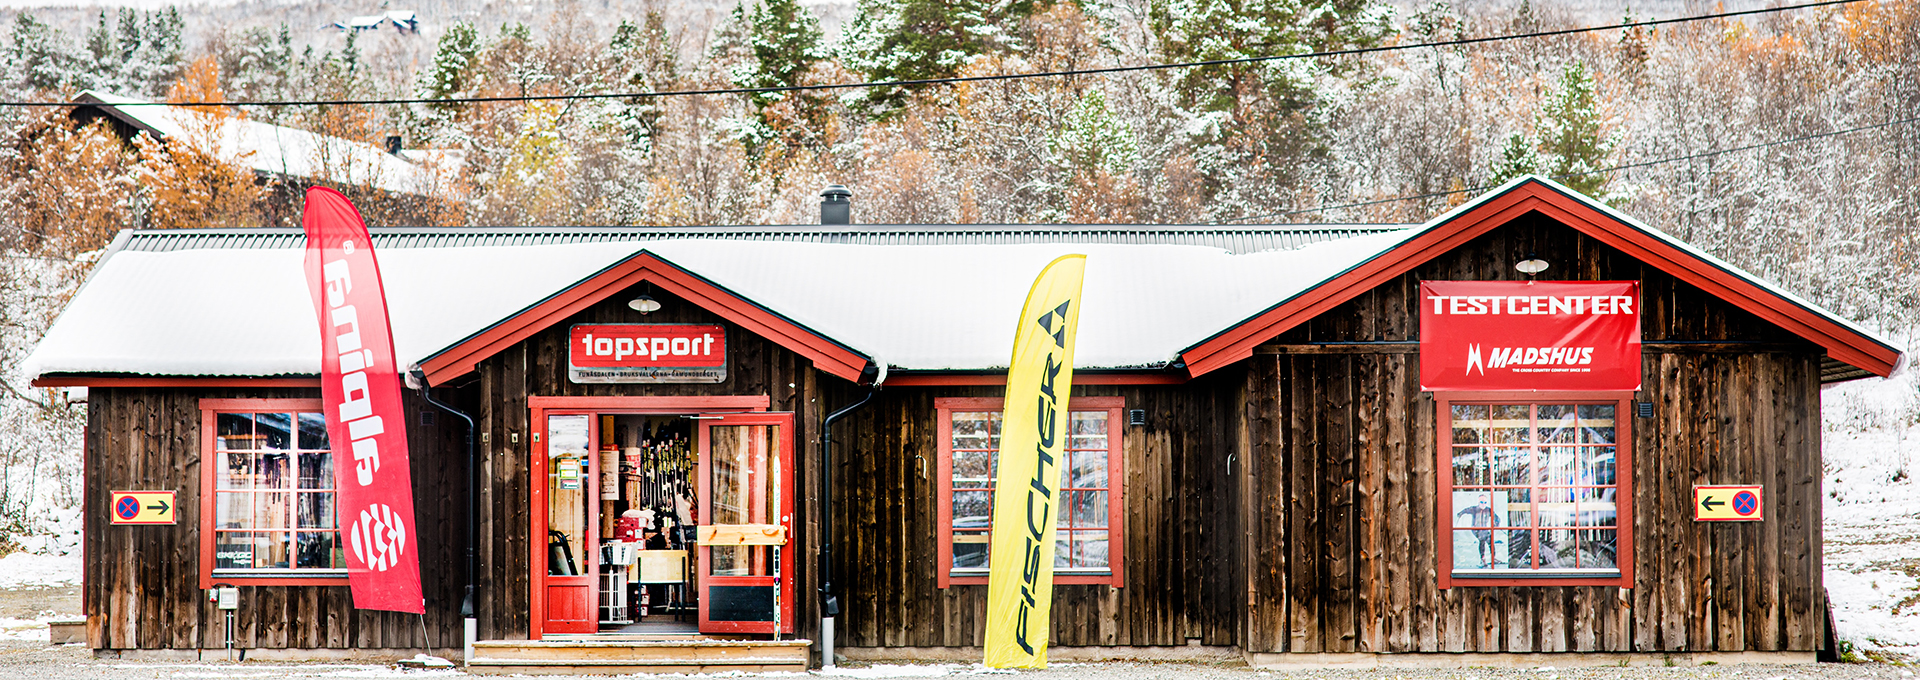 Topsport sports shop in Bruksvallarna